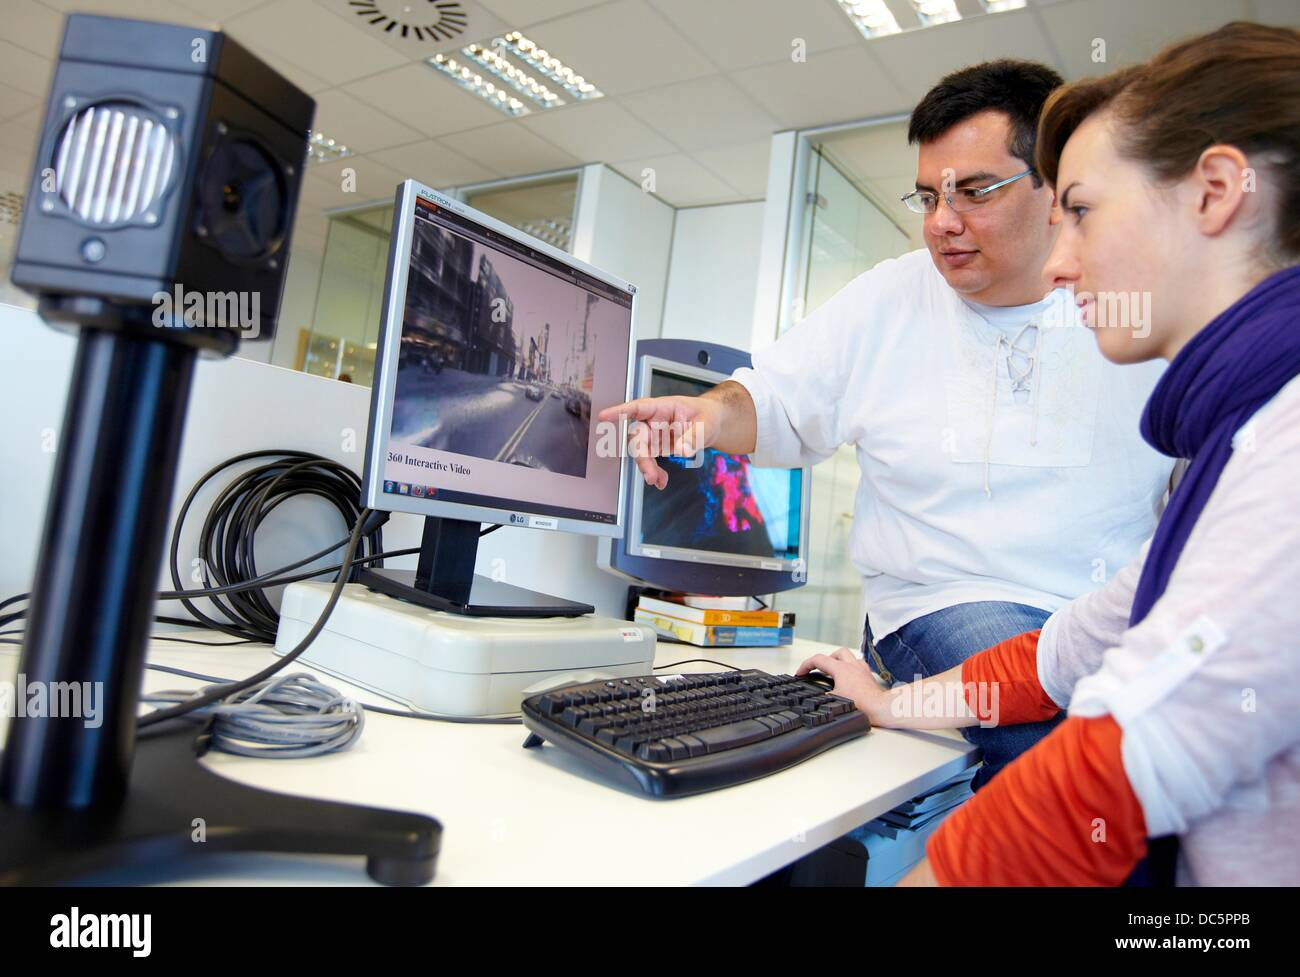 Omnidirectional video demo, smart systems for transportation and engineering, Vicomtech-IK4 Visual Interaction and - Stock Image